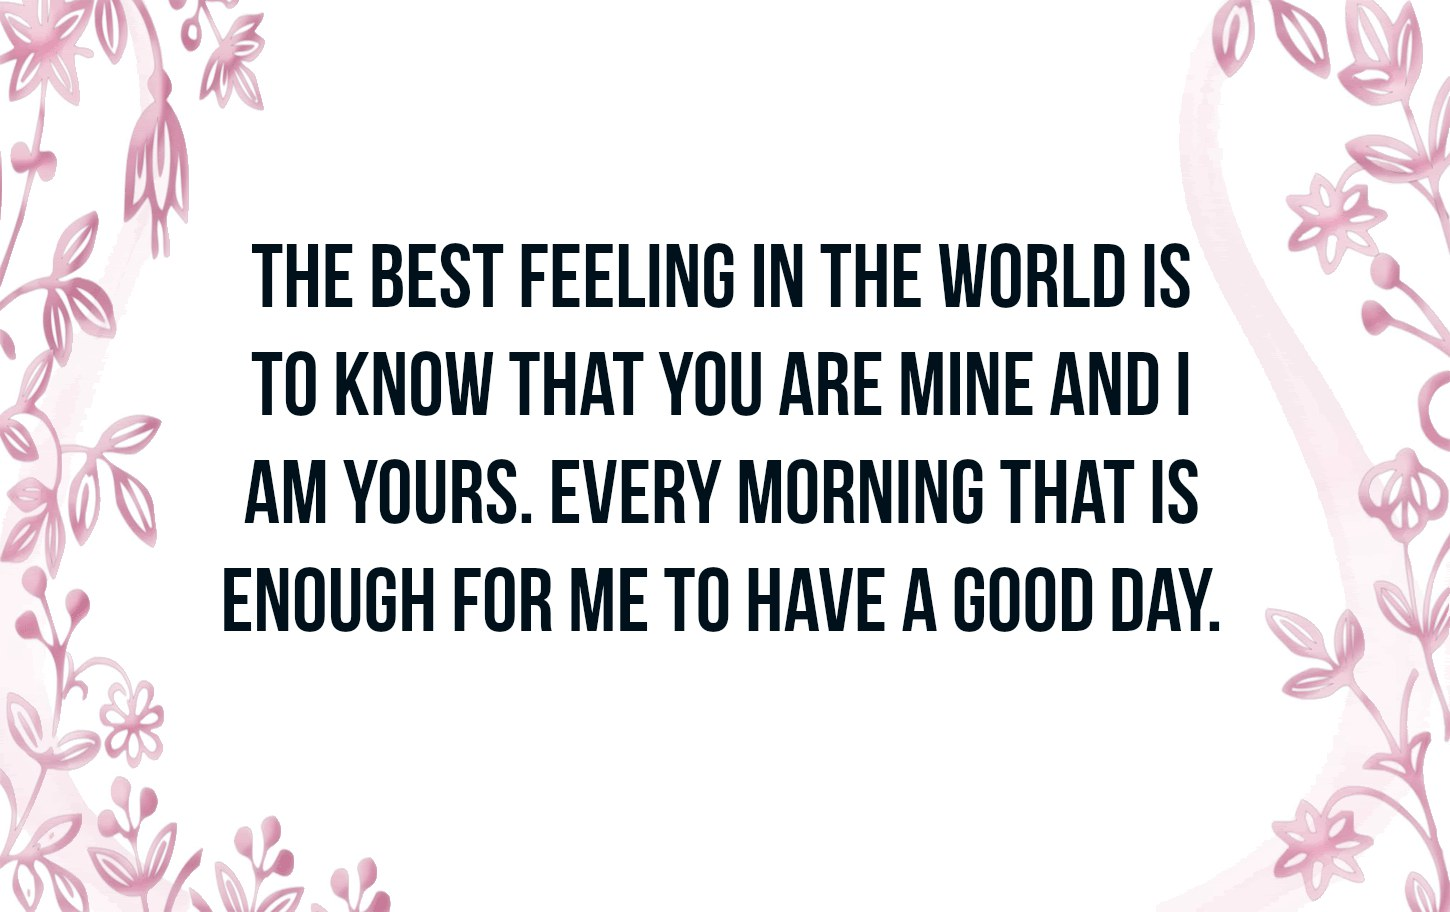 Have A Great Day Love Quotes Pinterest thumbnail